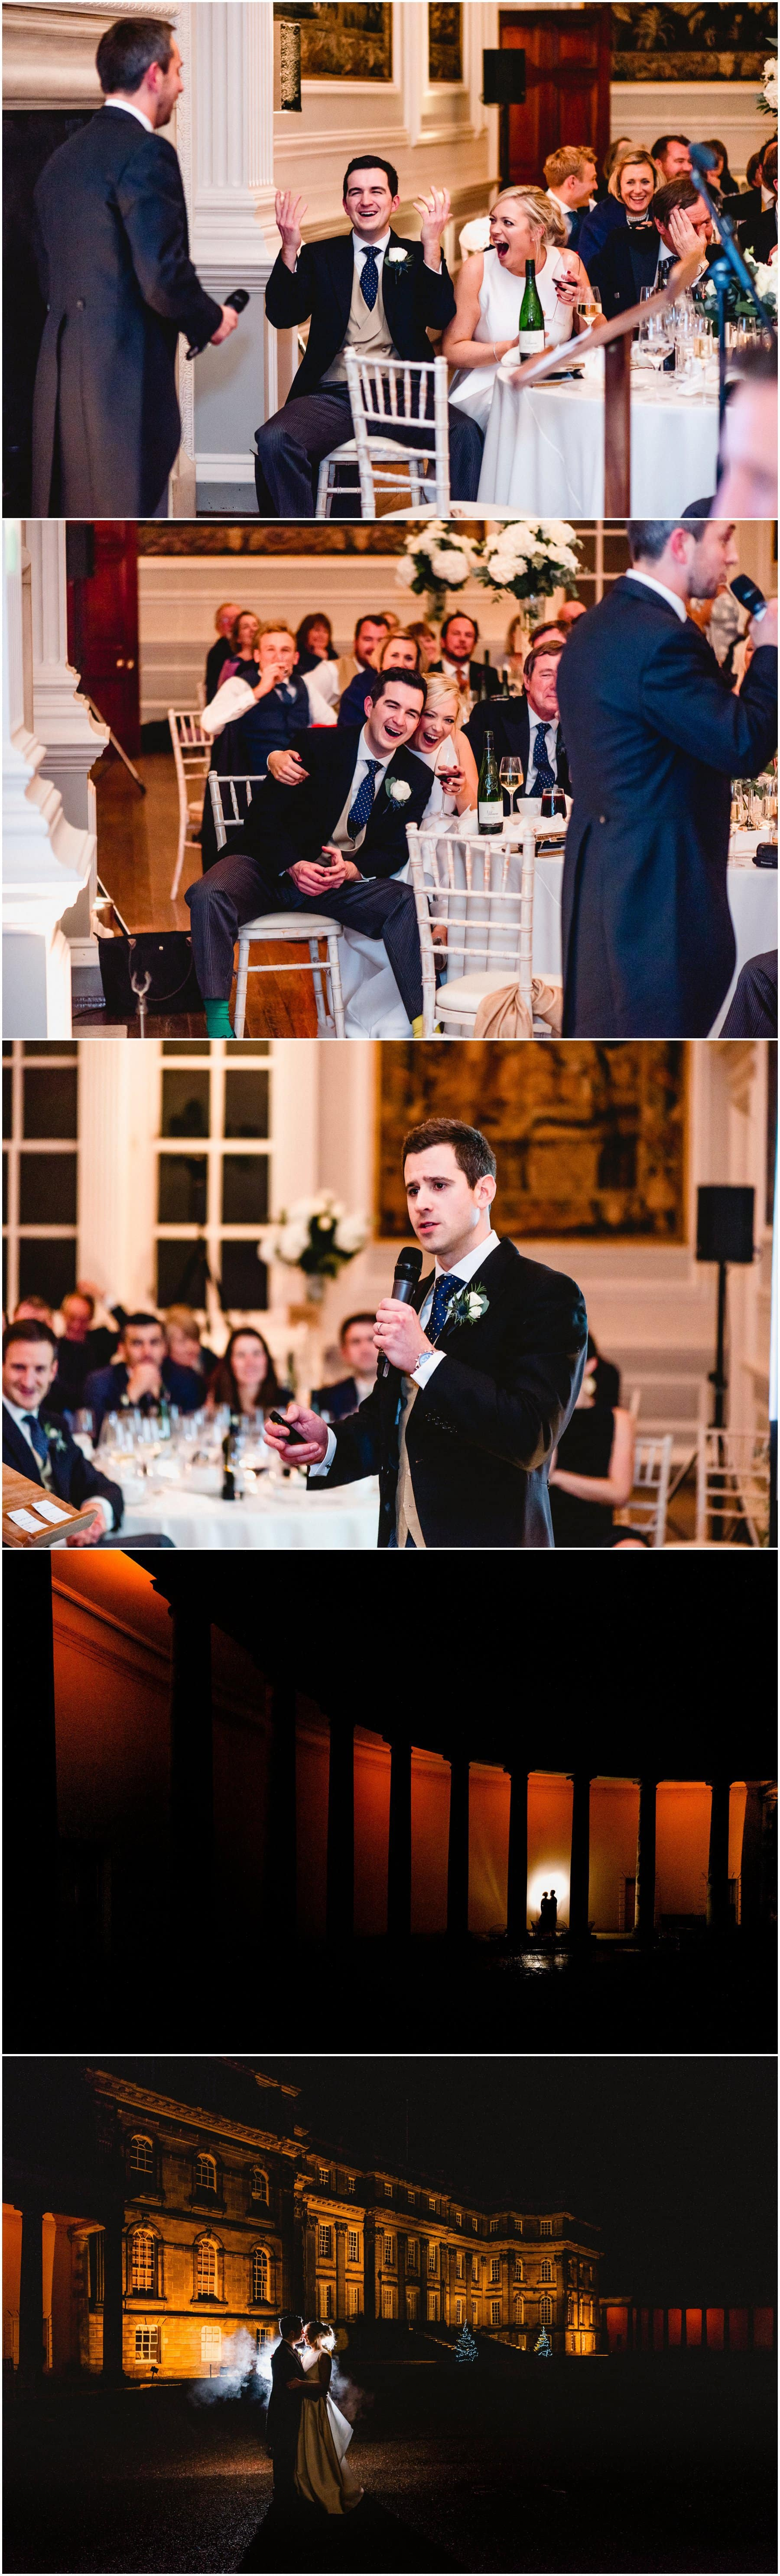 Speeches photos at Hopetoun House with bride and groom reactions and guests laughing followed by photos of bride and groom backlit against exterior of Hopetoun House for evening portraits with smoke